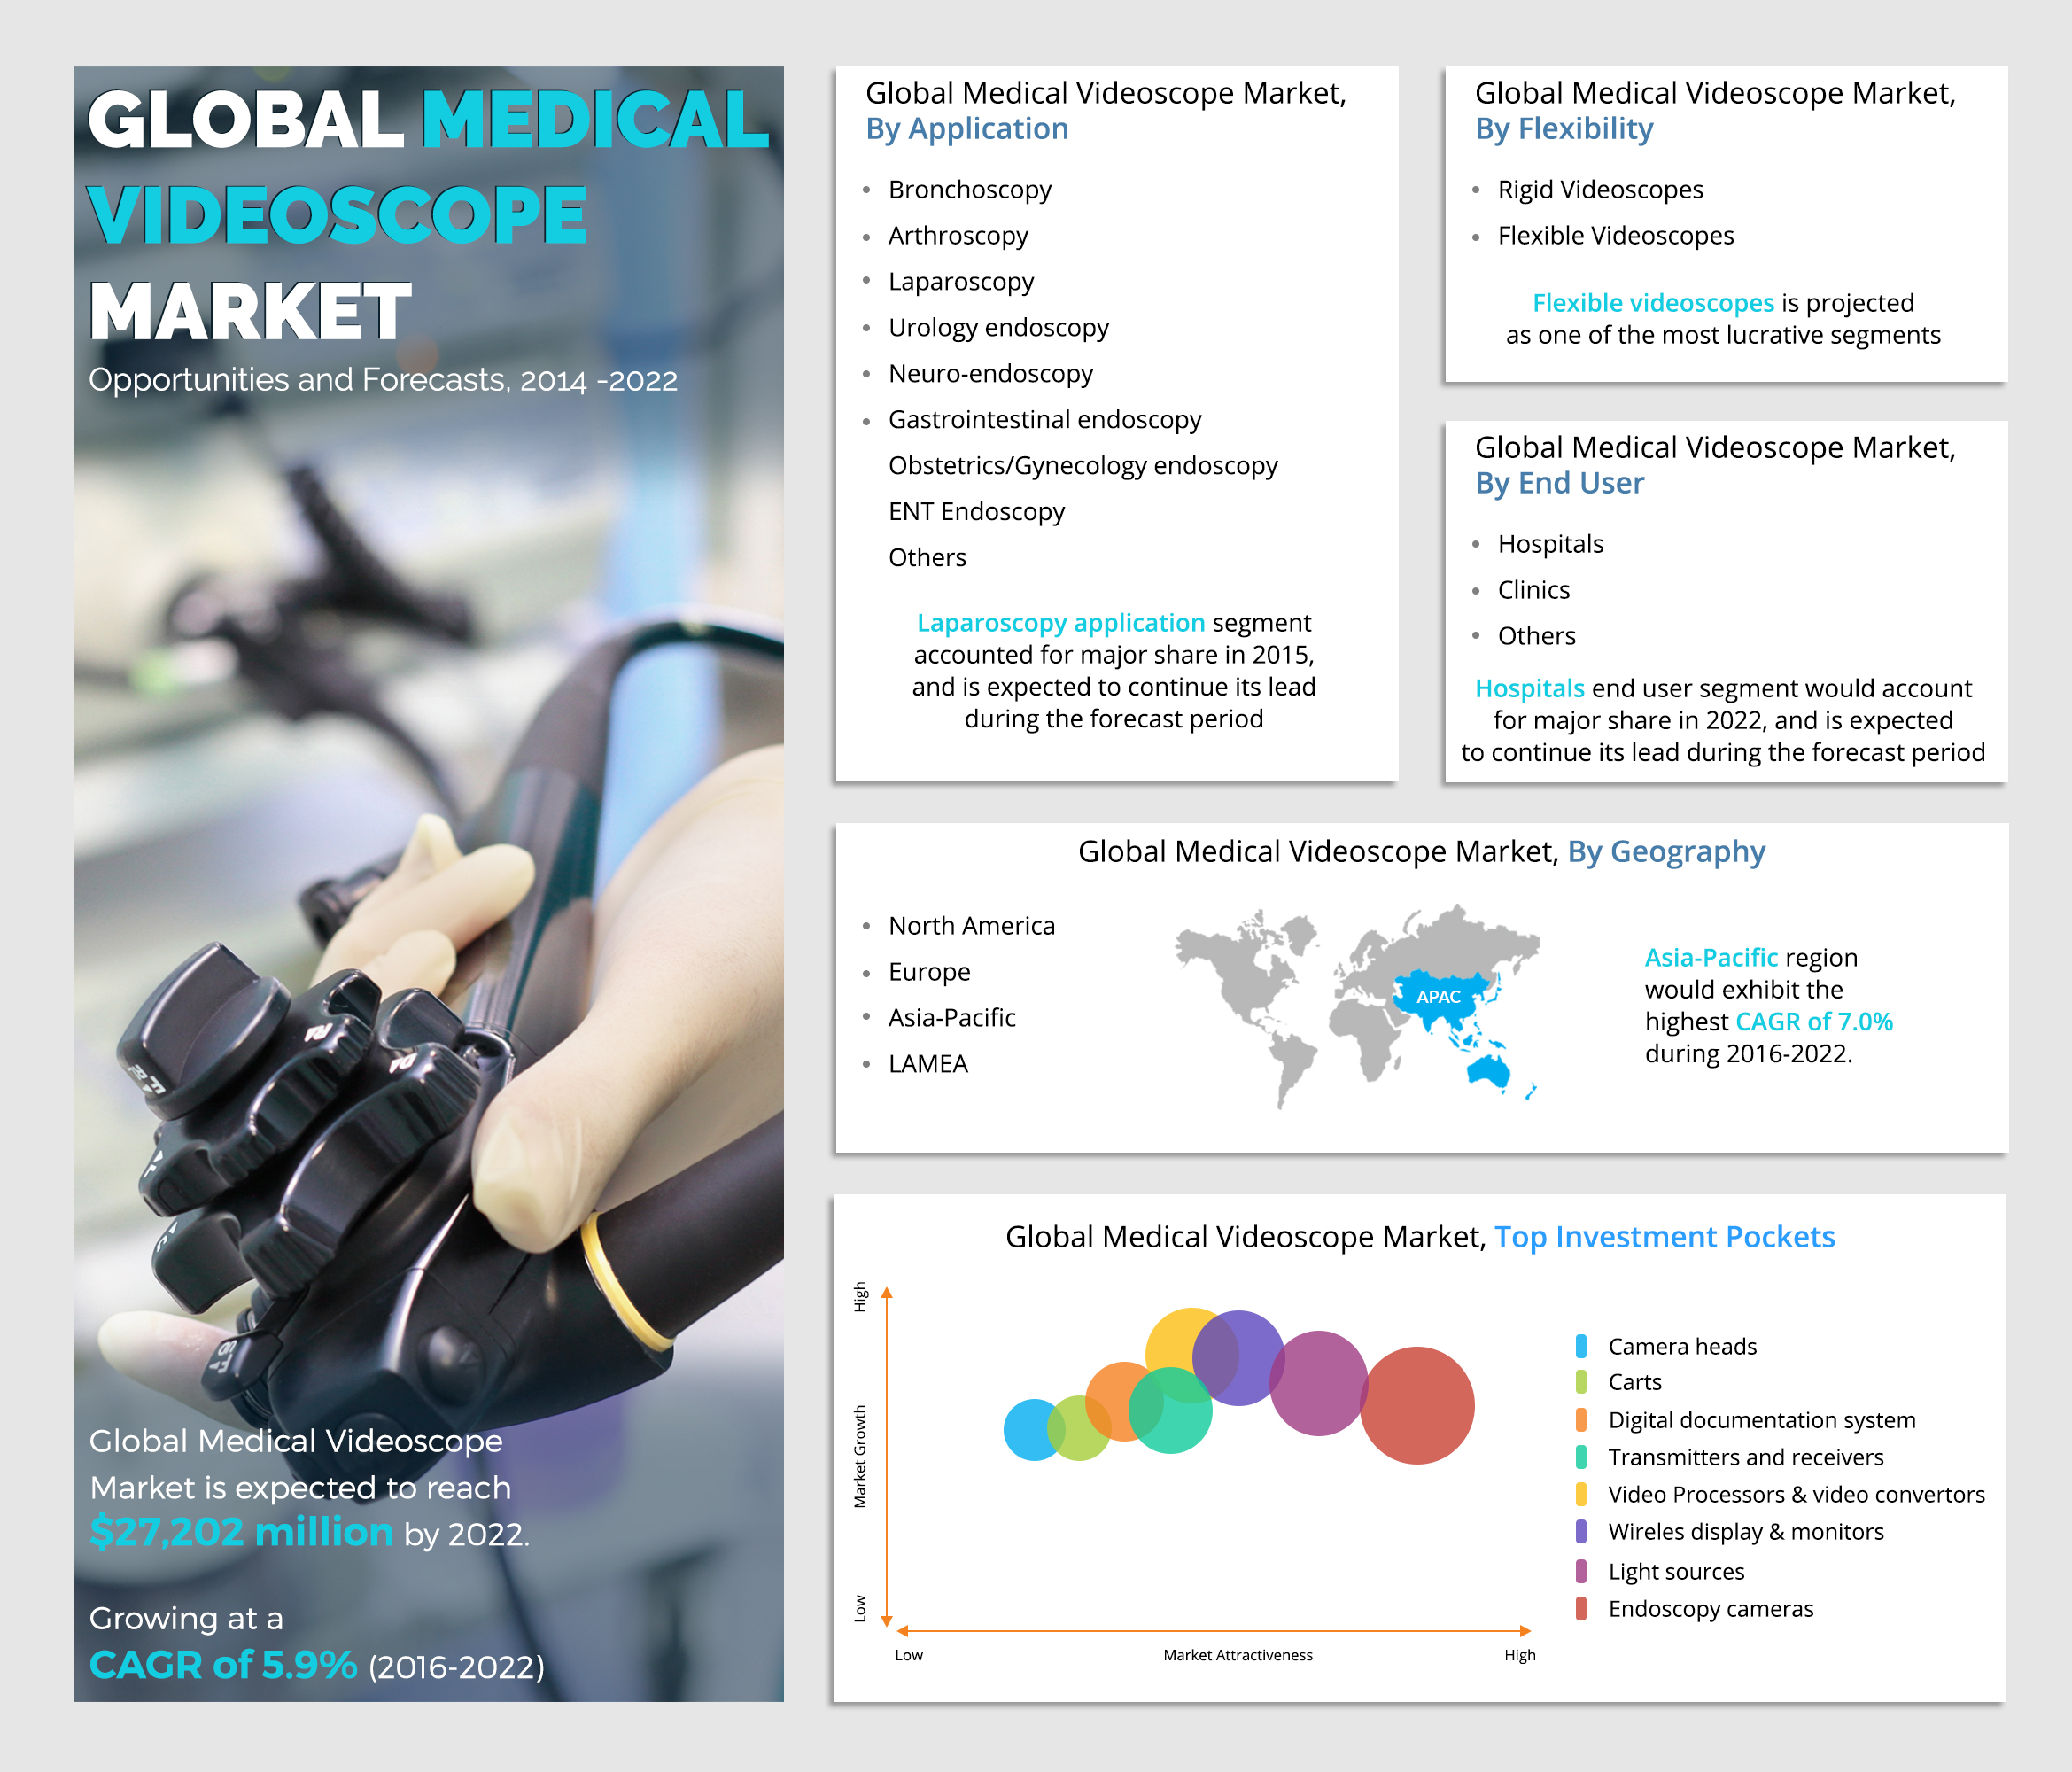 Medical Videoscope Market